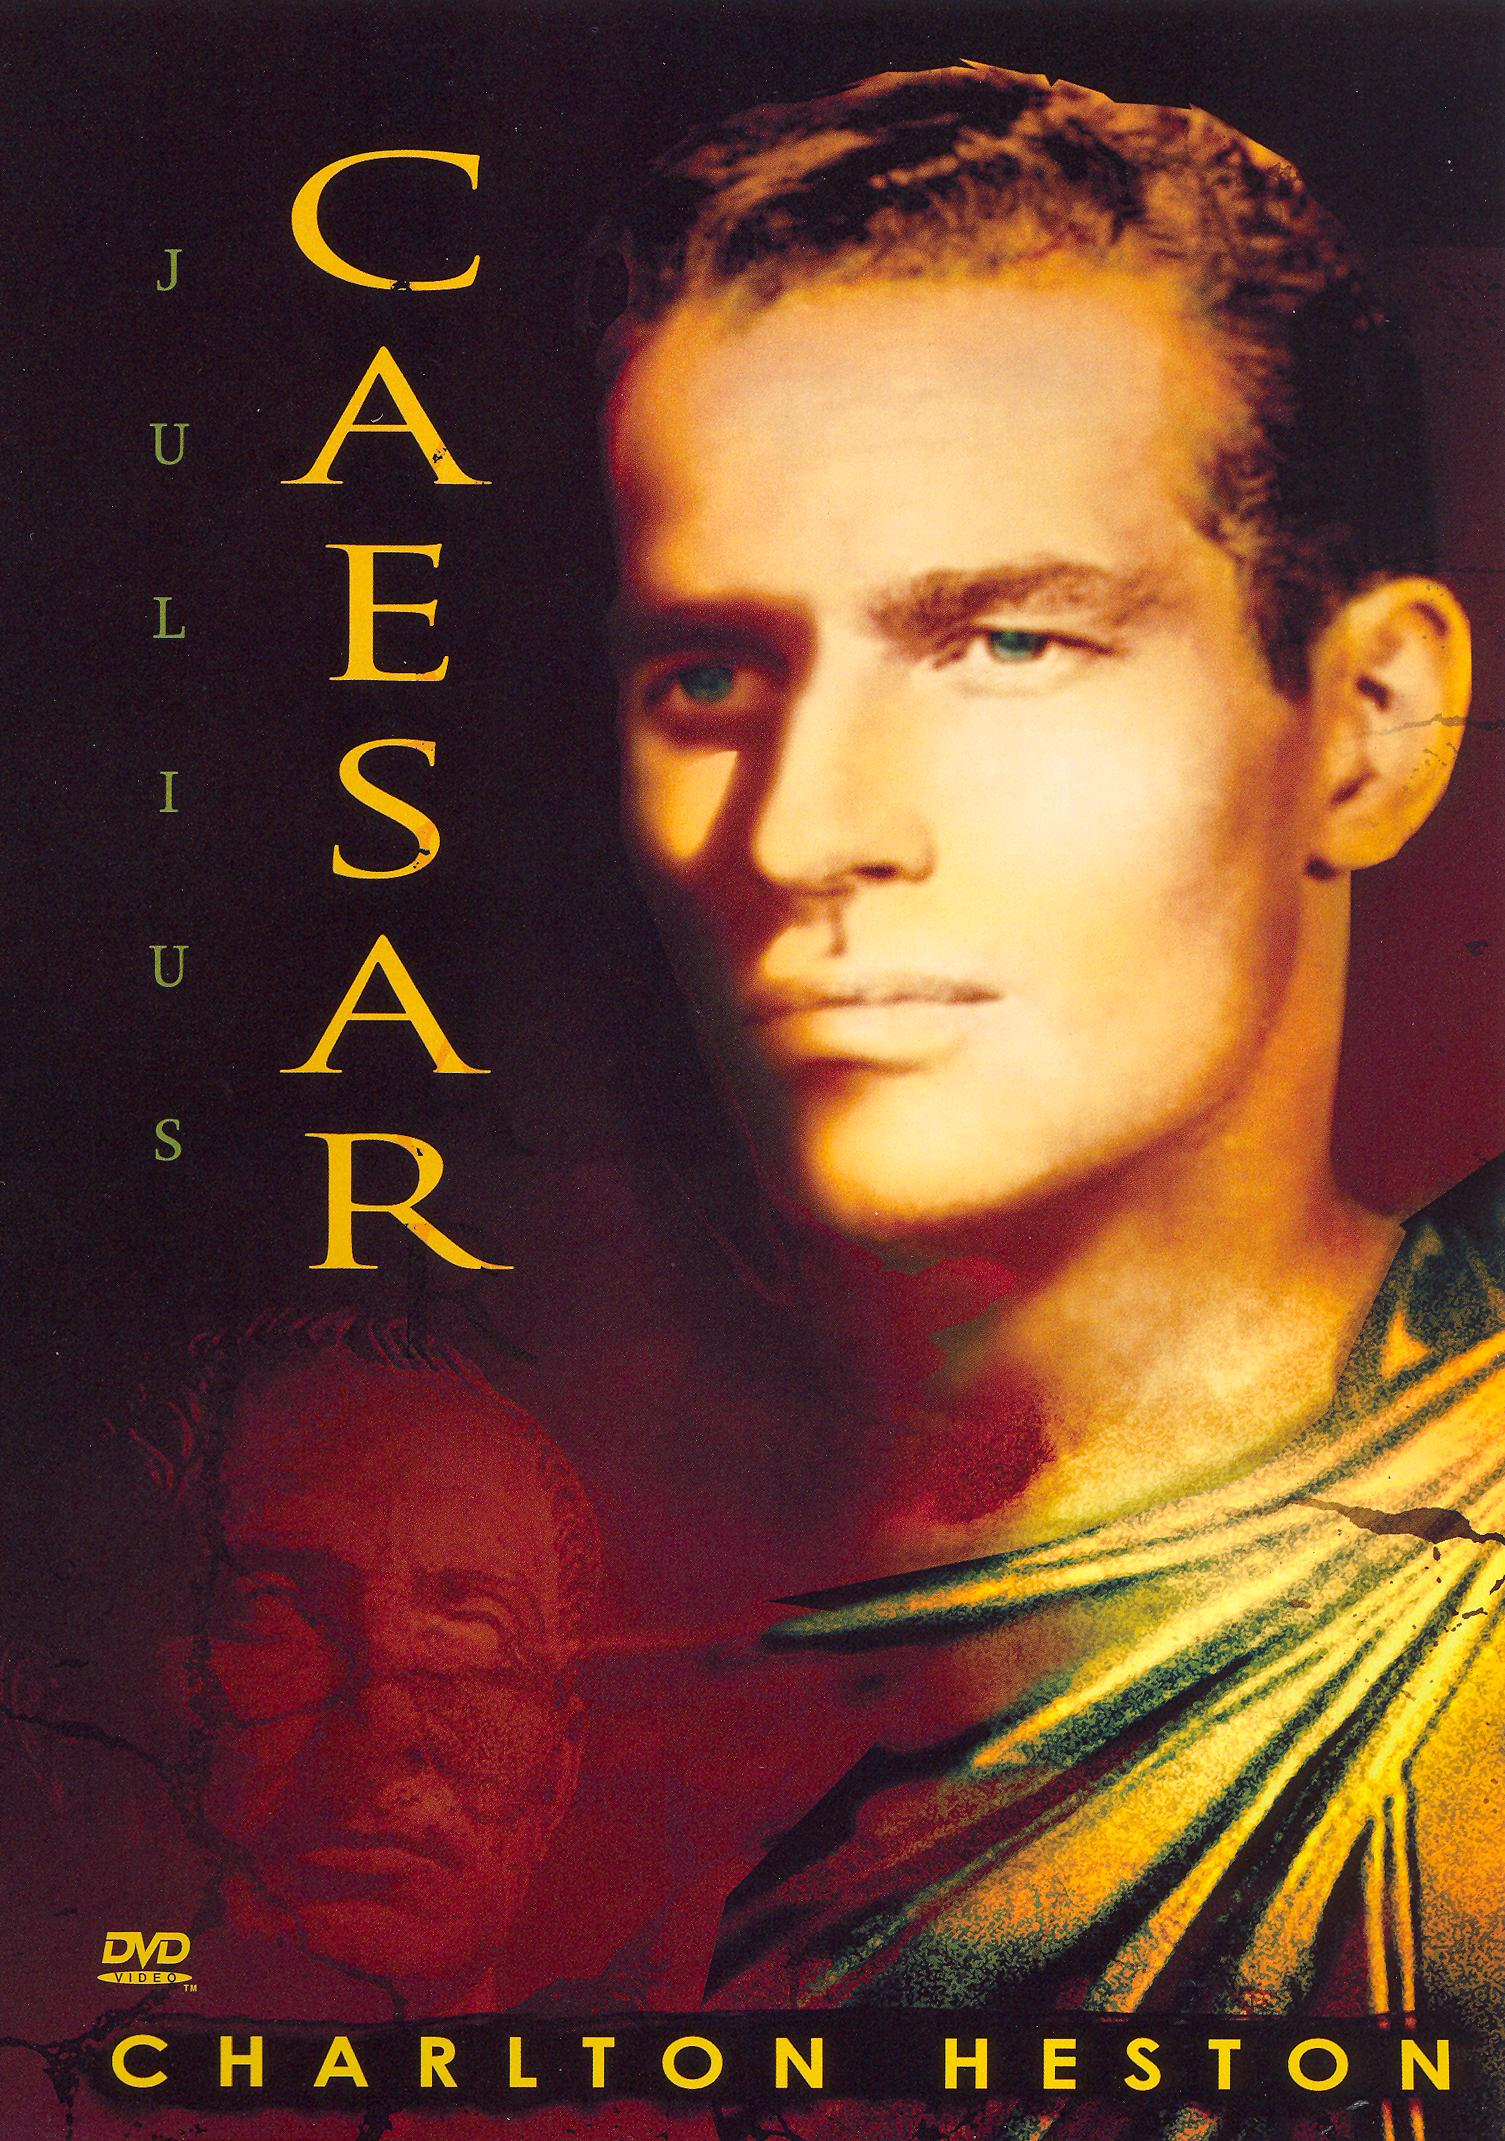 an overview of the tragedy of julius caesar a play by william shakespeare No fear shakespeare by sparknotes features the complete edition of julius caesar side-by-side with an accessible, plain english translation.